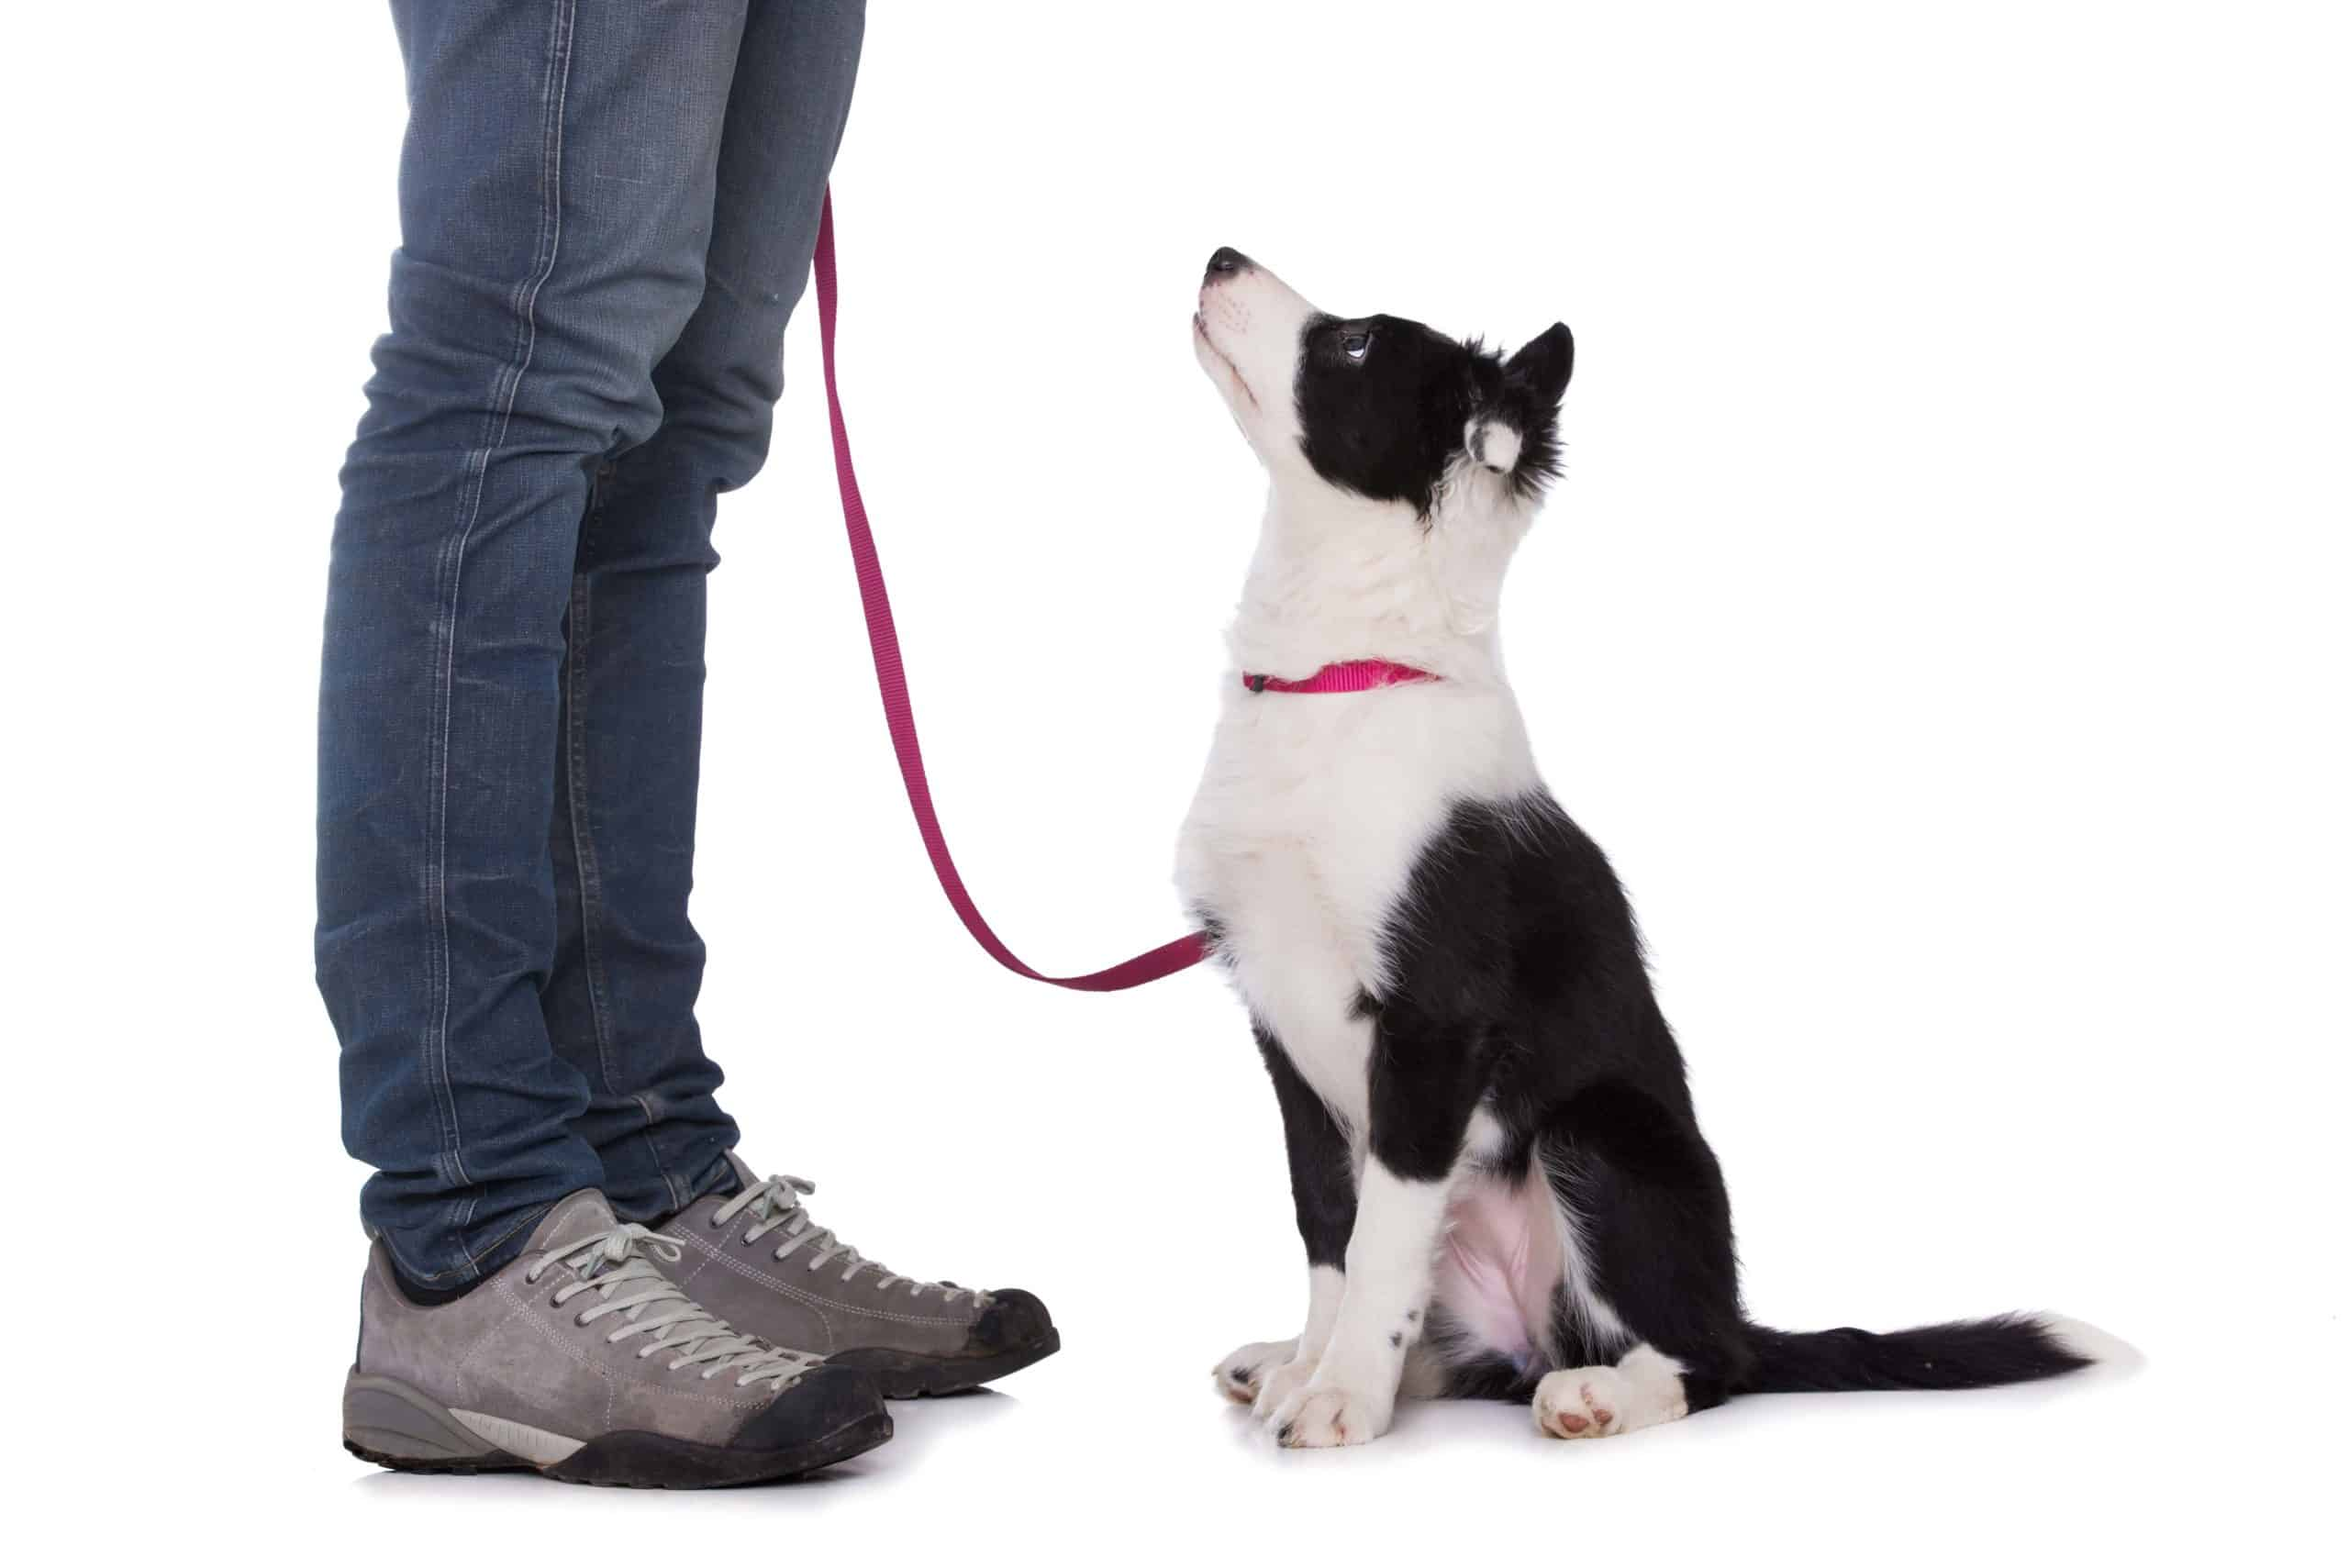 Dog owner trains border collie puppy. Make dog training easier by working in a quiet spot without distractions for you or your pup.